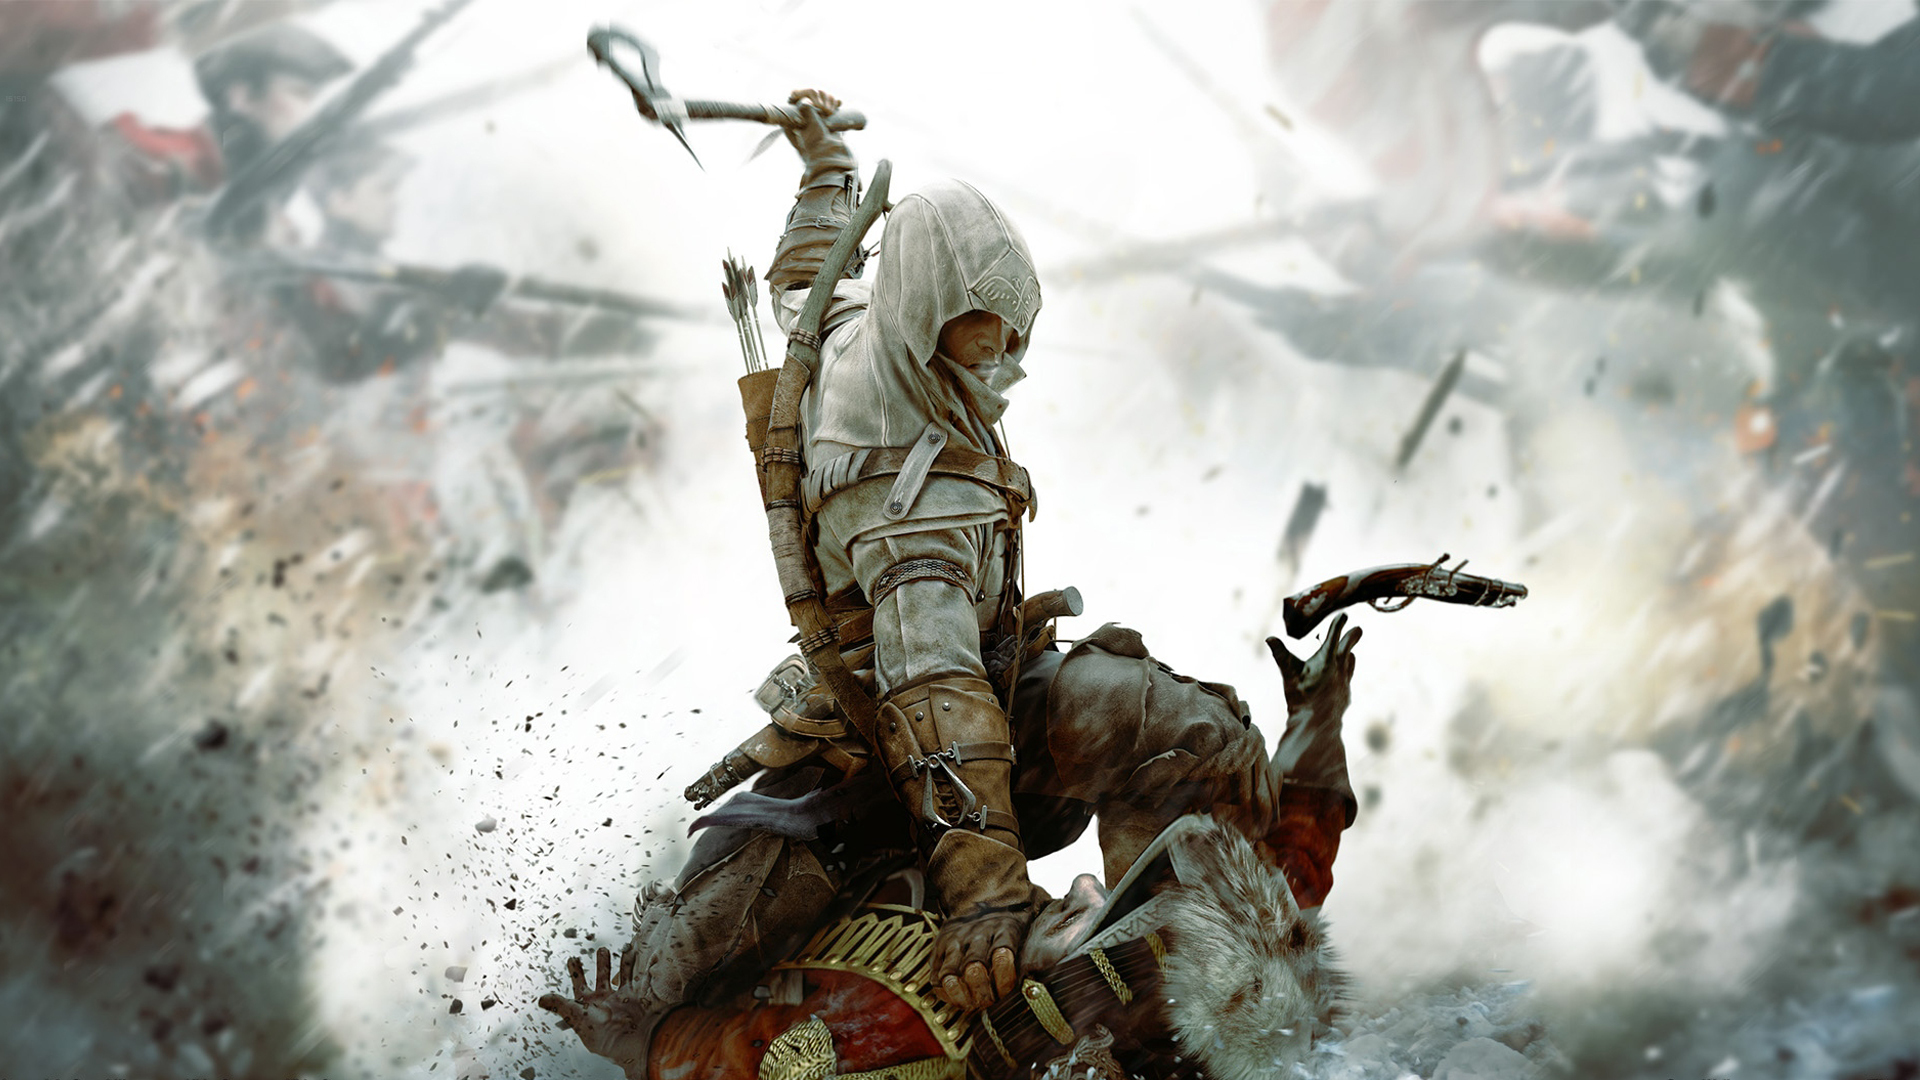 the Collection Assassins Creed Video Game Assassins Creed III 319633 1920x1080